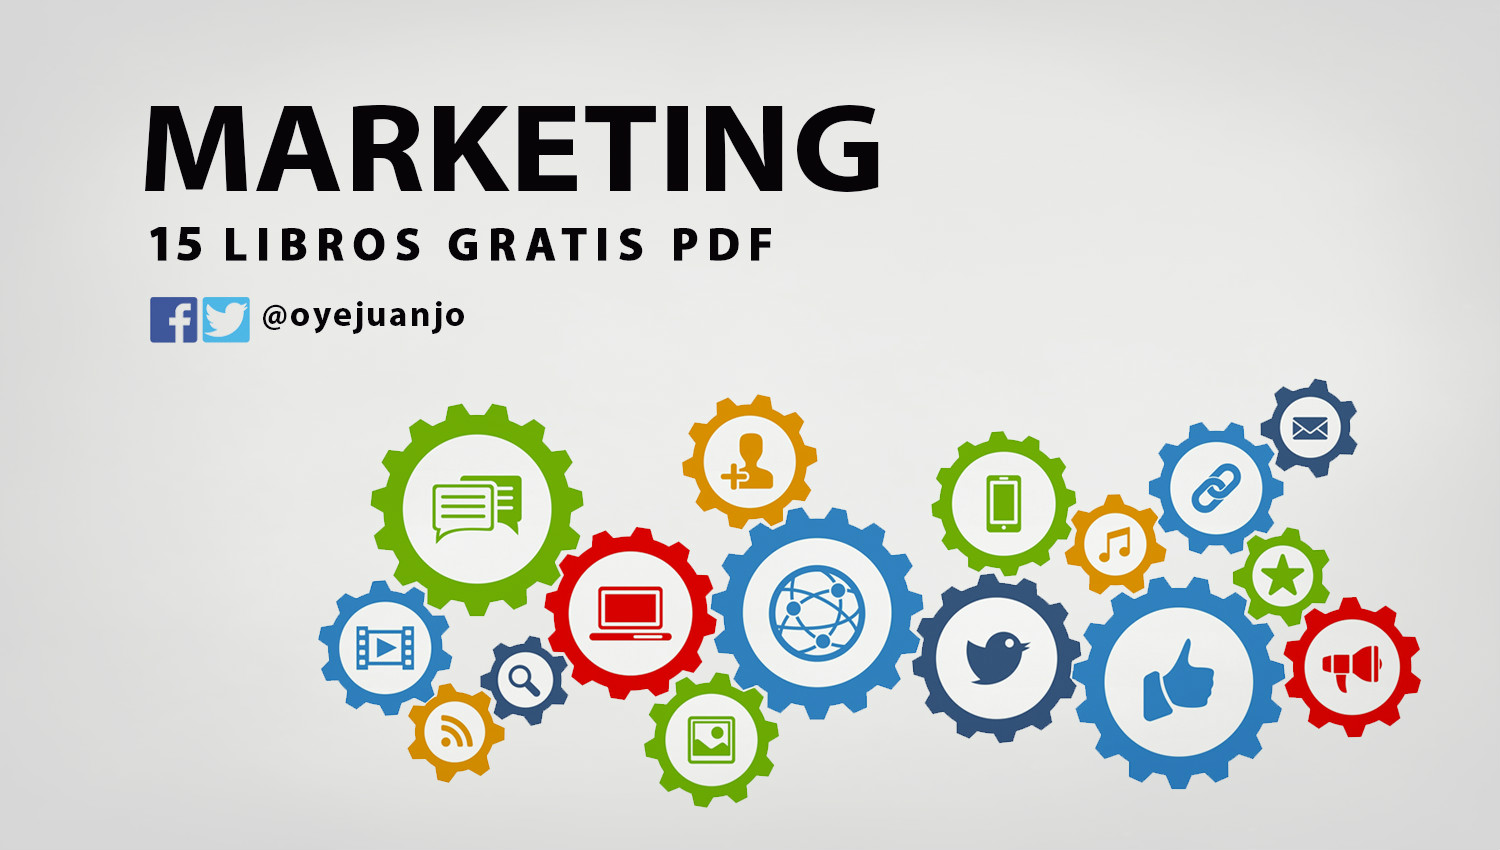 Web De Libros Gratis 15 Libros Gratis En Pdf De Marketing Oye Juanjo